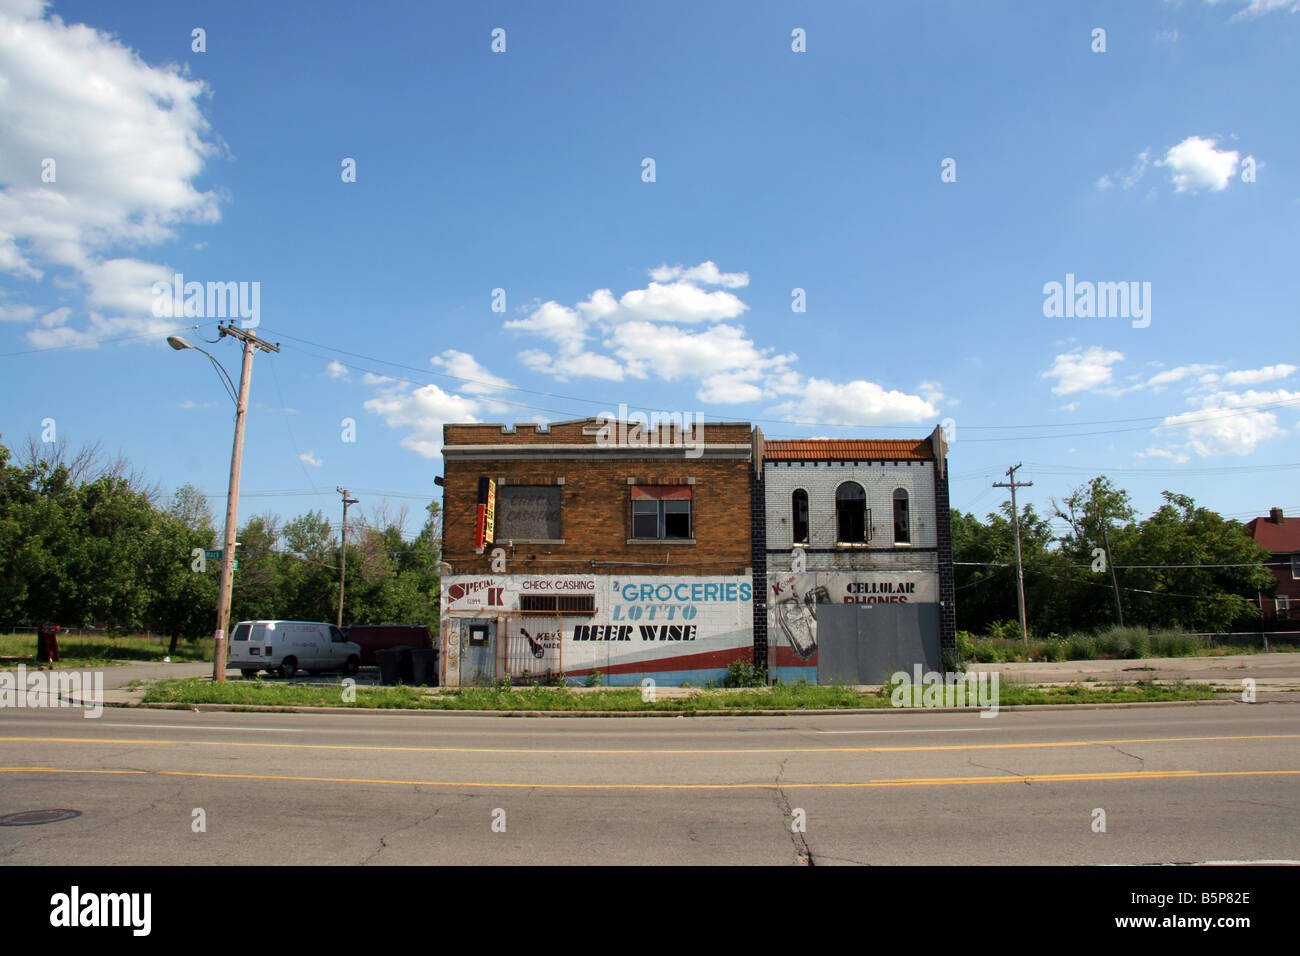 Boarded up businesses in Detroit Michigan USA - Stock Image